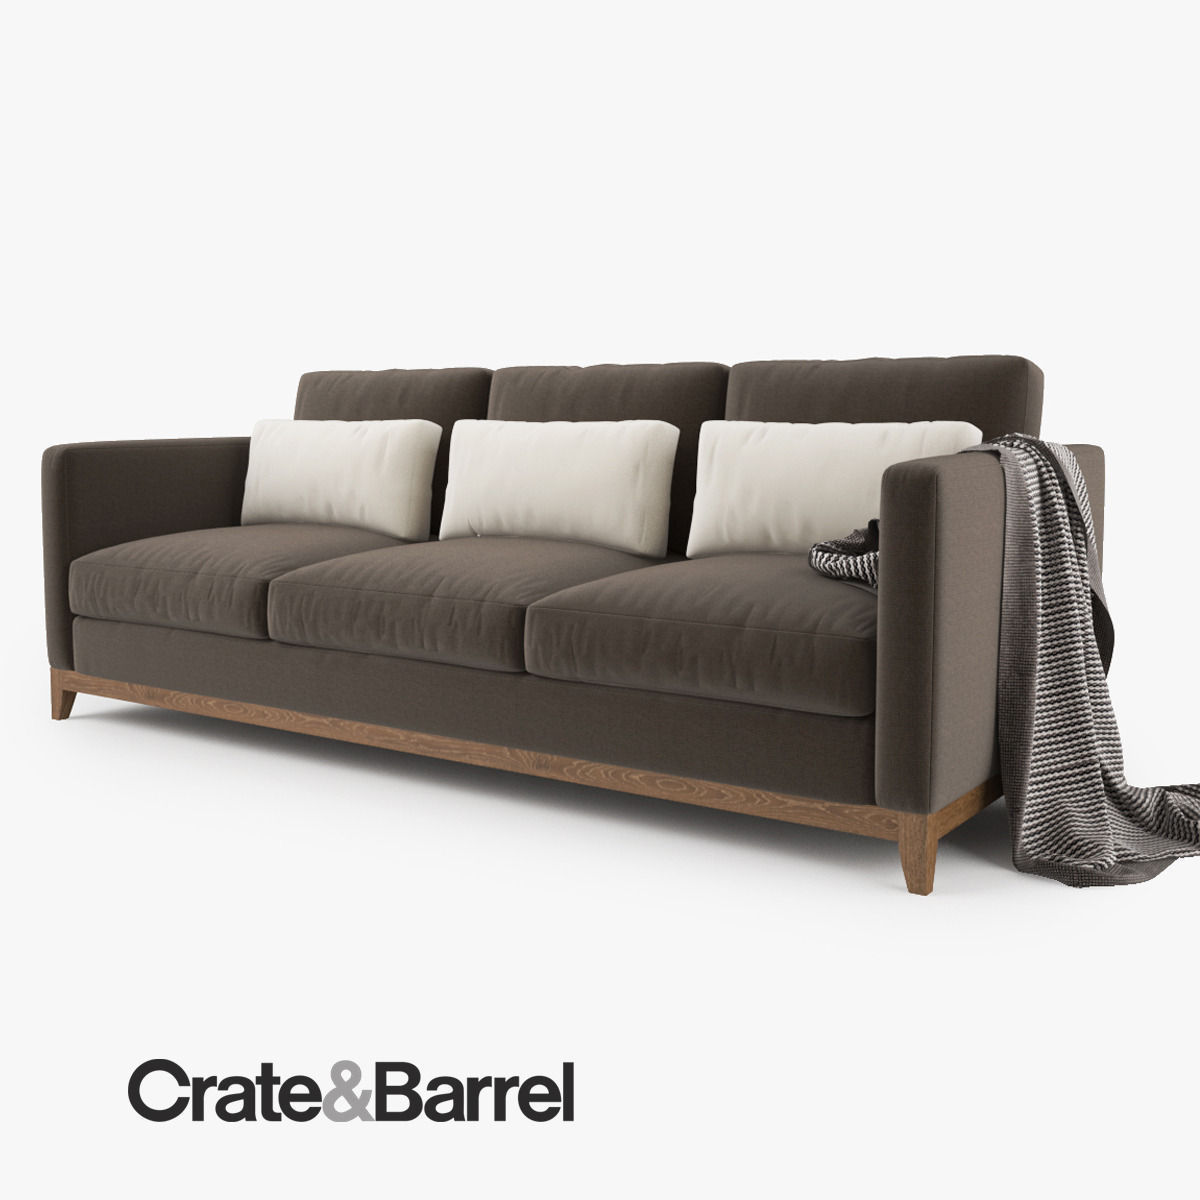 ... crate and barrel taraval 3 seat sofa 3d model max obj fbx mtl 5 ...